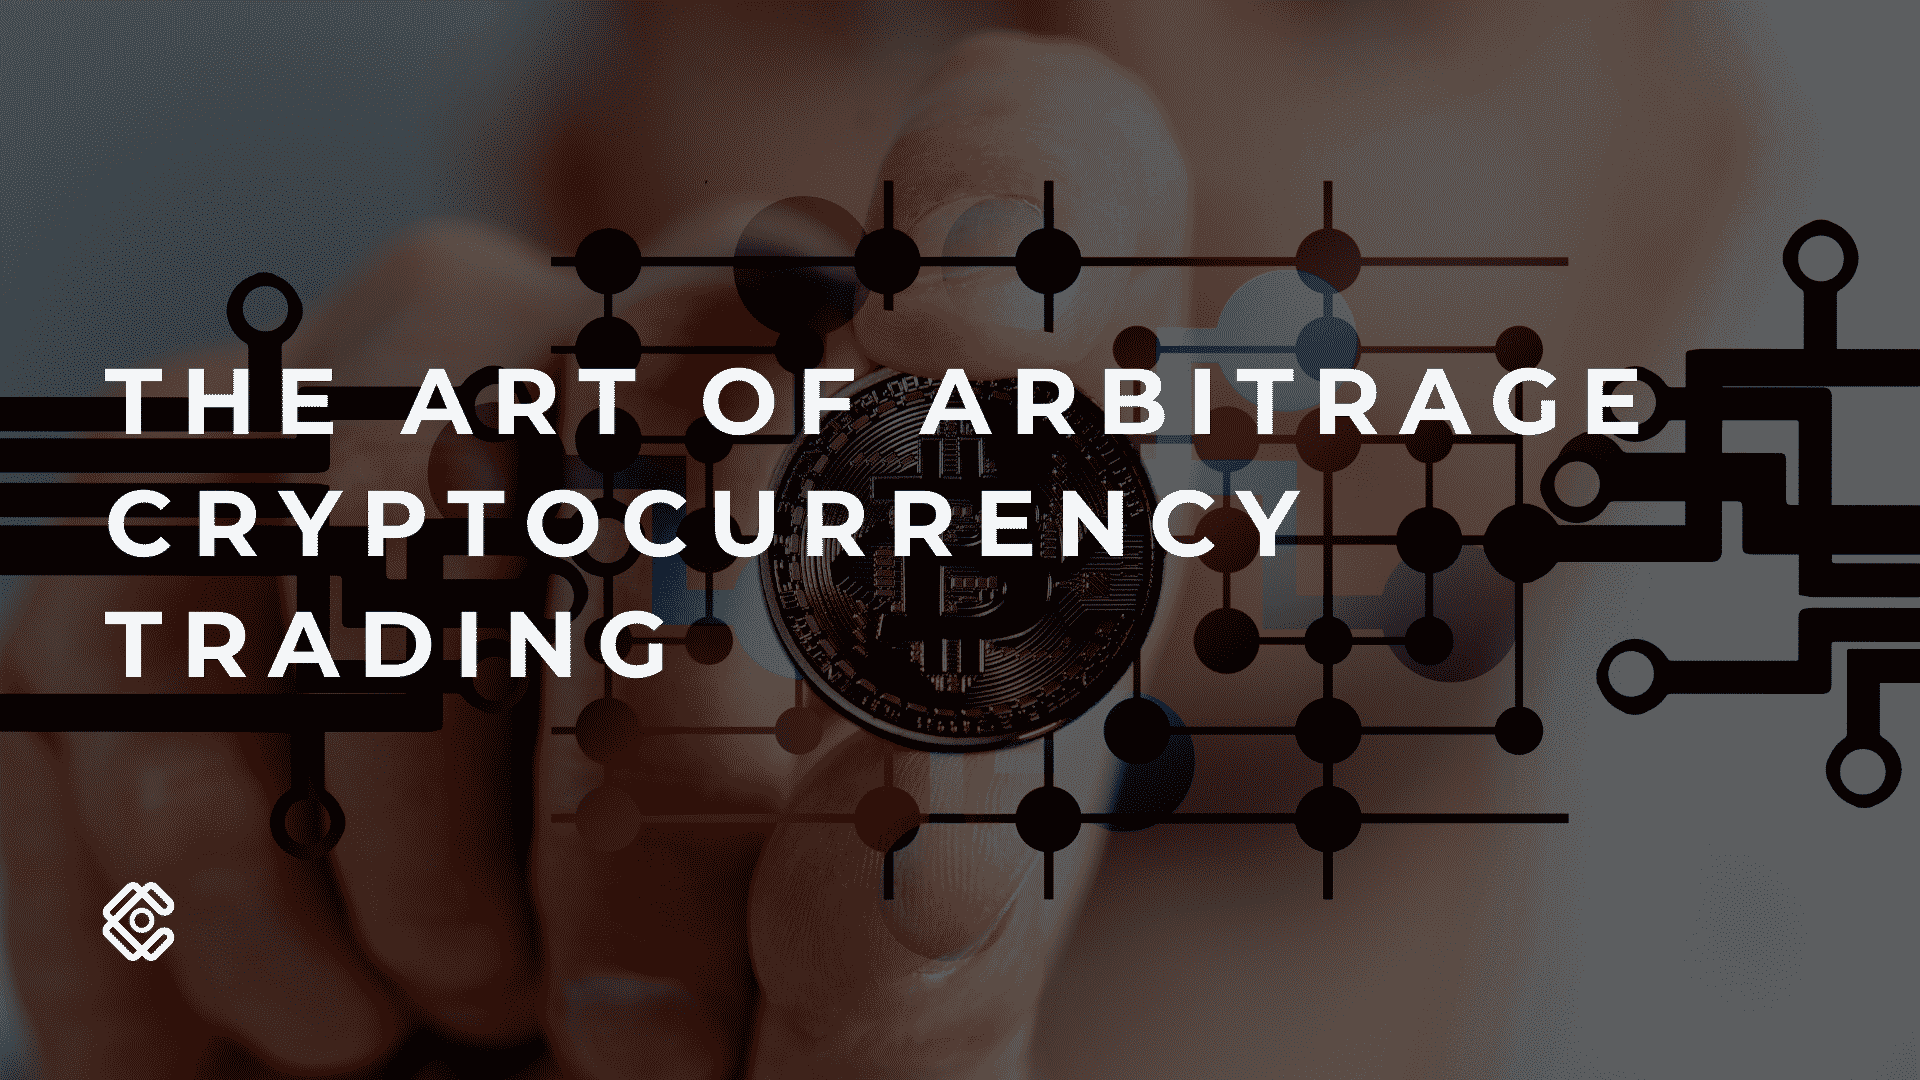 The Art of Arbitrage Cryptocurrency Trading